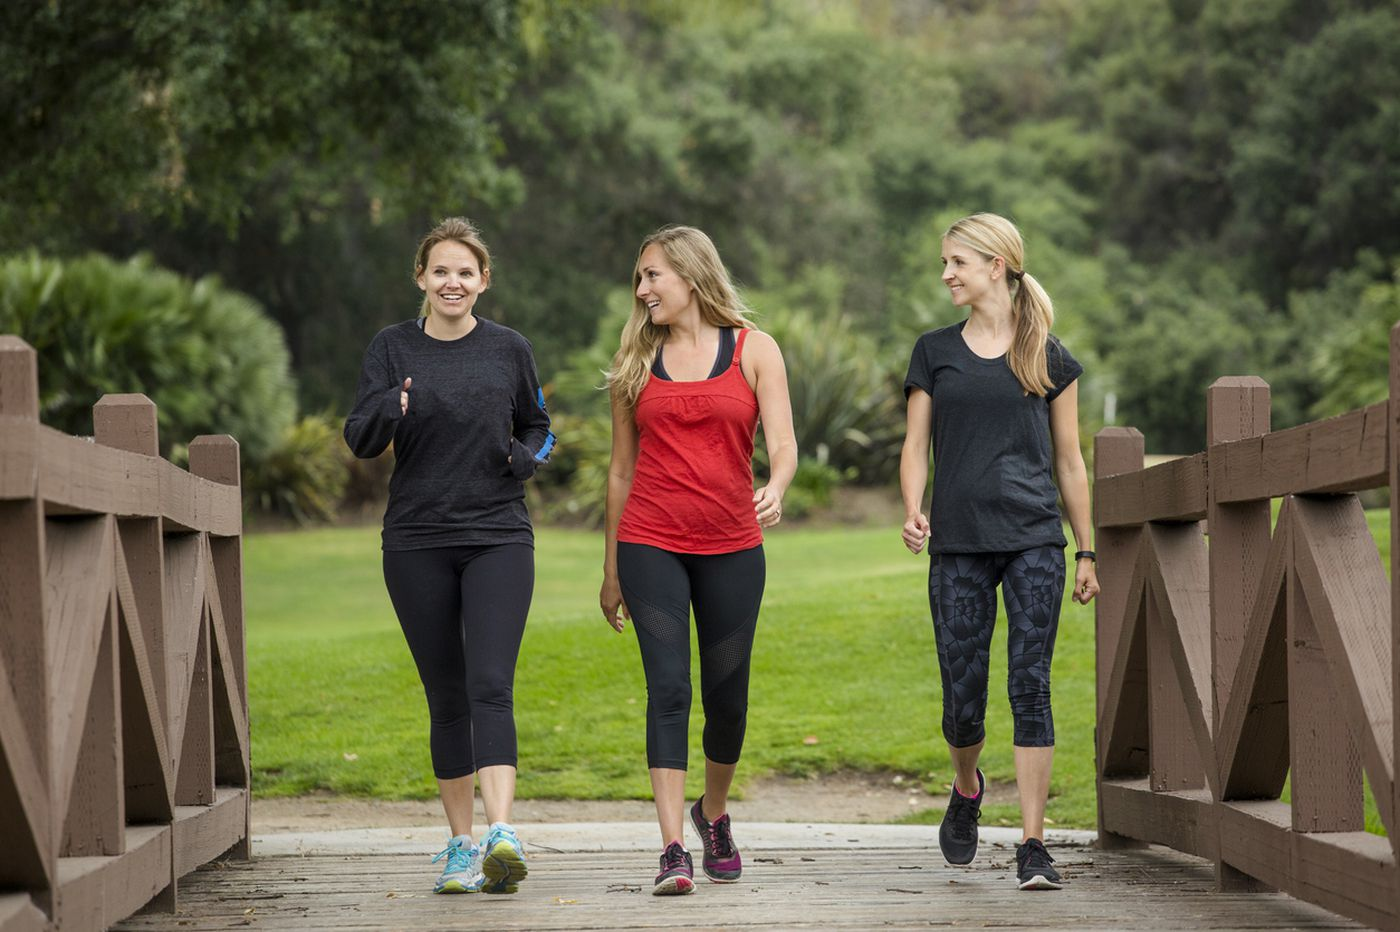 Want to be healthier? Pick up the pace